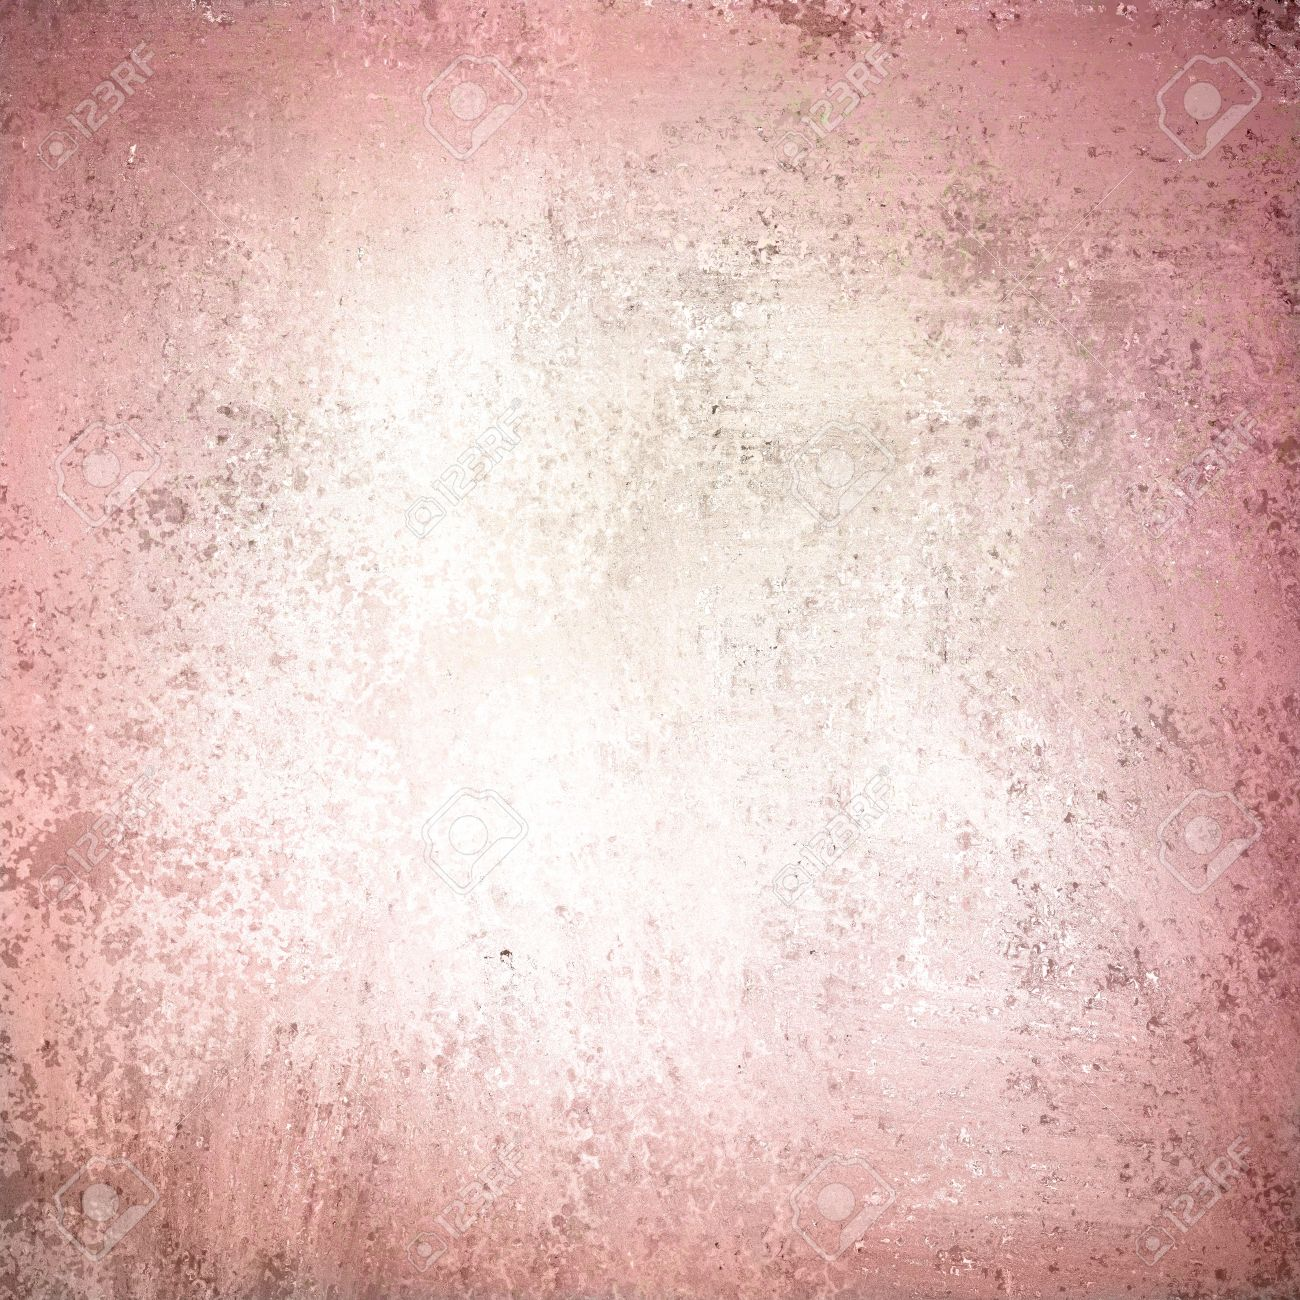 Website soft colors - Stock Photo Abstract Pink Background Gray Color Soft Valentine Background Of Vintage Grunge Background Texture White Center Pastel Paper Or Old